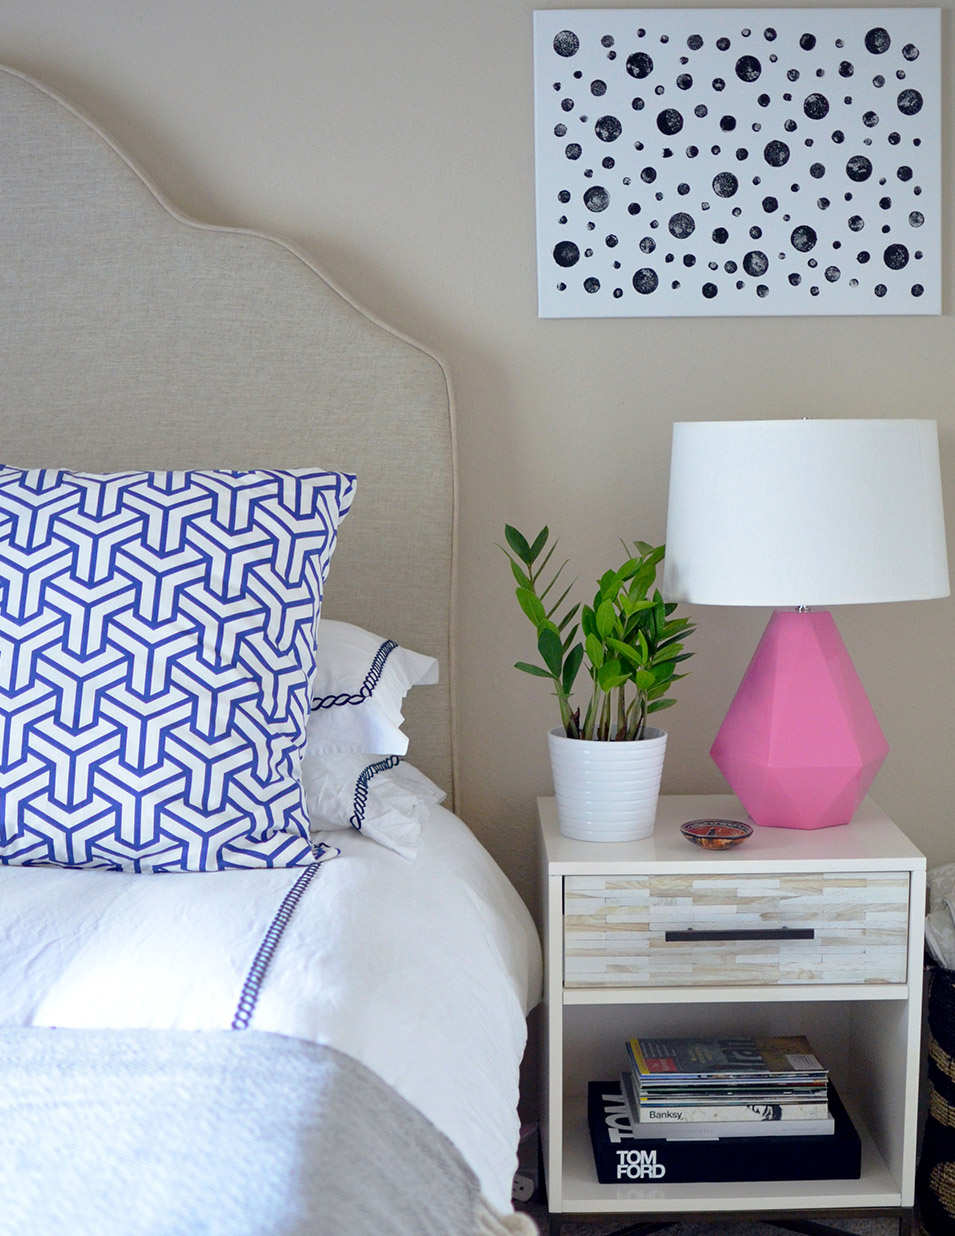 Stacy + Charlie: DIY polka dot wall art